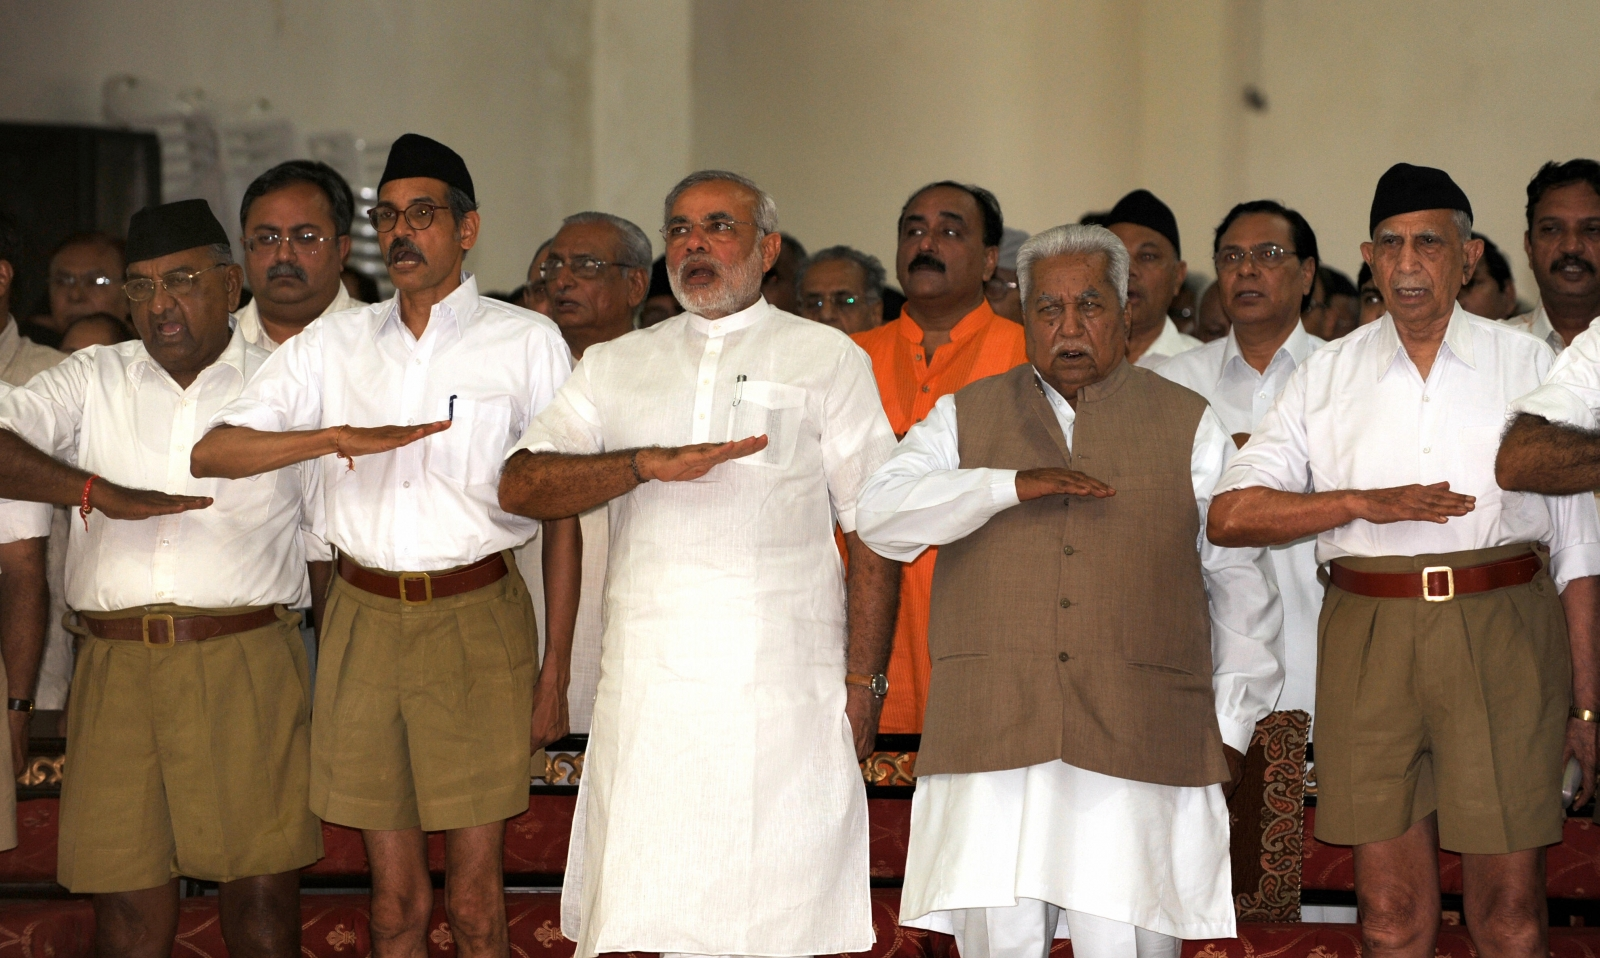 Gujarat state Chief Minister Narendra Modi (3rd L) and former chief minister Keshubhai Patel (2nd R, front) gesture as they attend a Rashtriya Swayamsevak Sangh (RSS) gathering at the Tria Mandir in Adalaj, some 20 kms from Ahmedabad